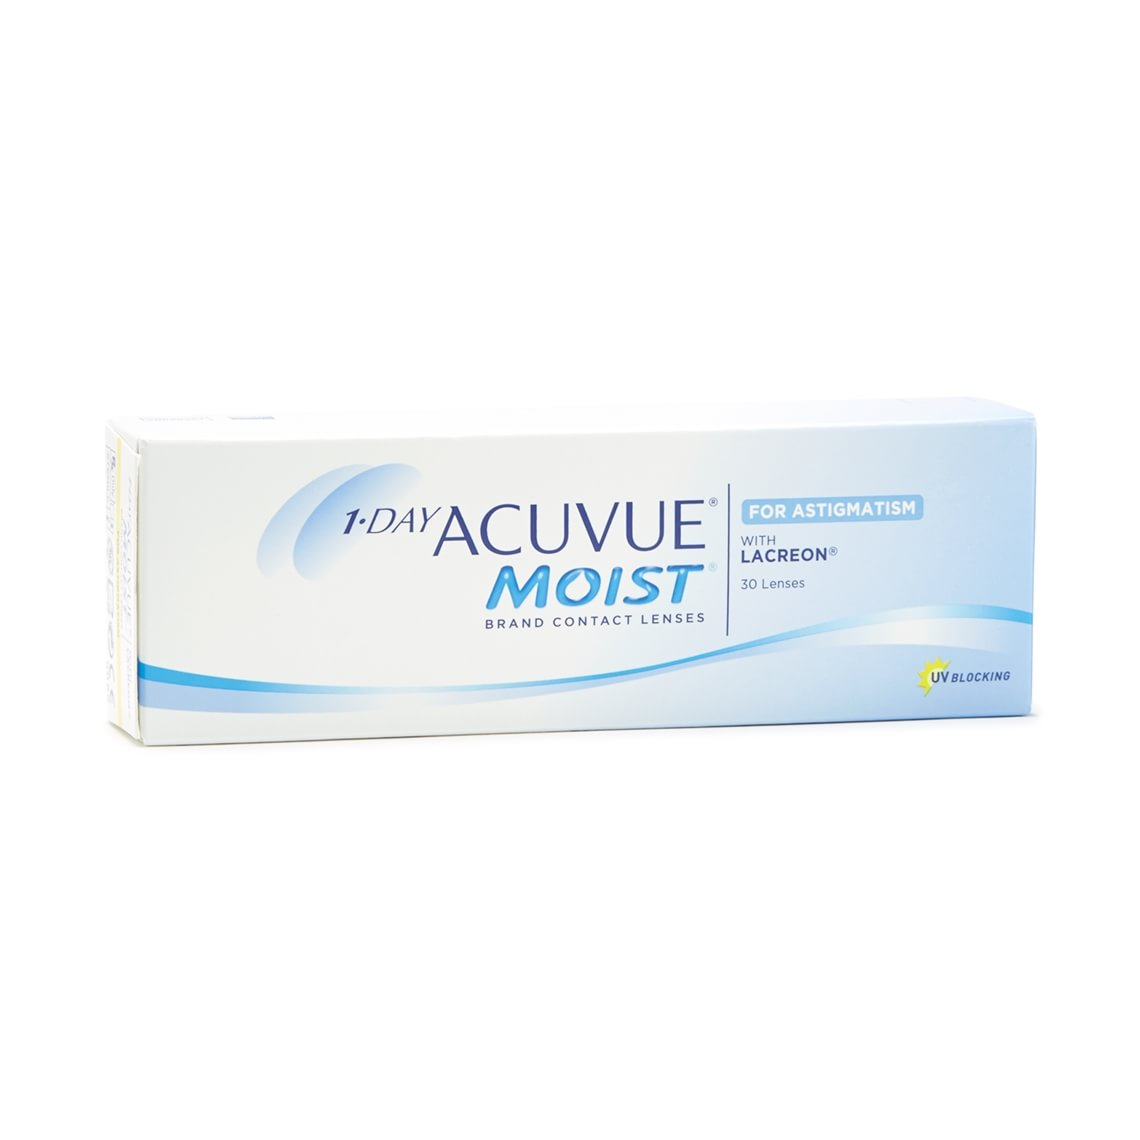 1-Day Acuvue Moist for Astigmatism 30 stk/pk